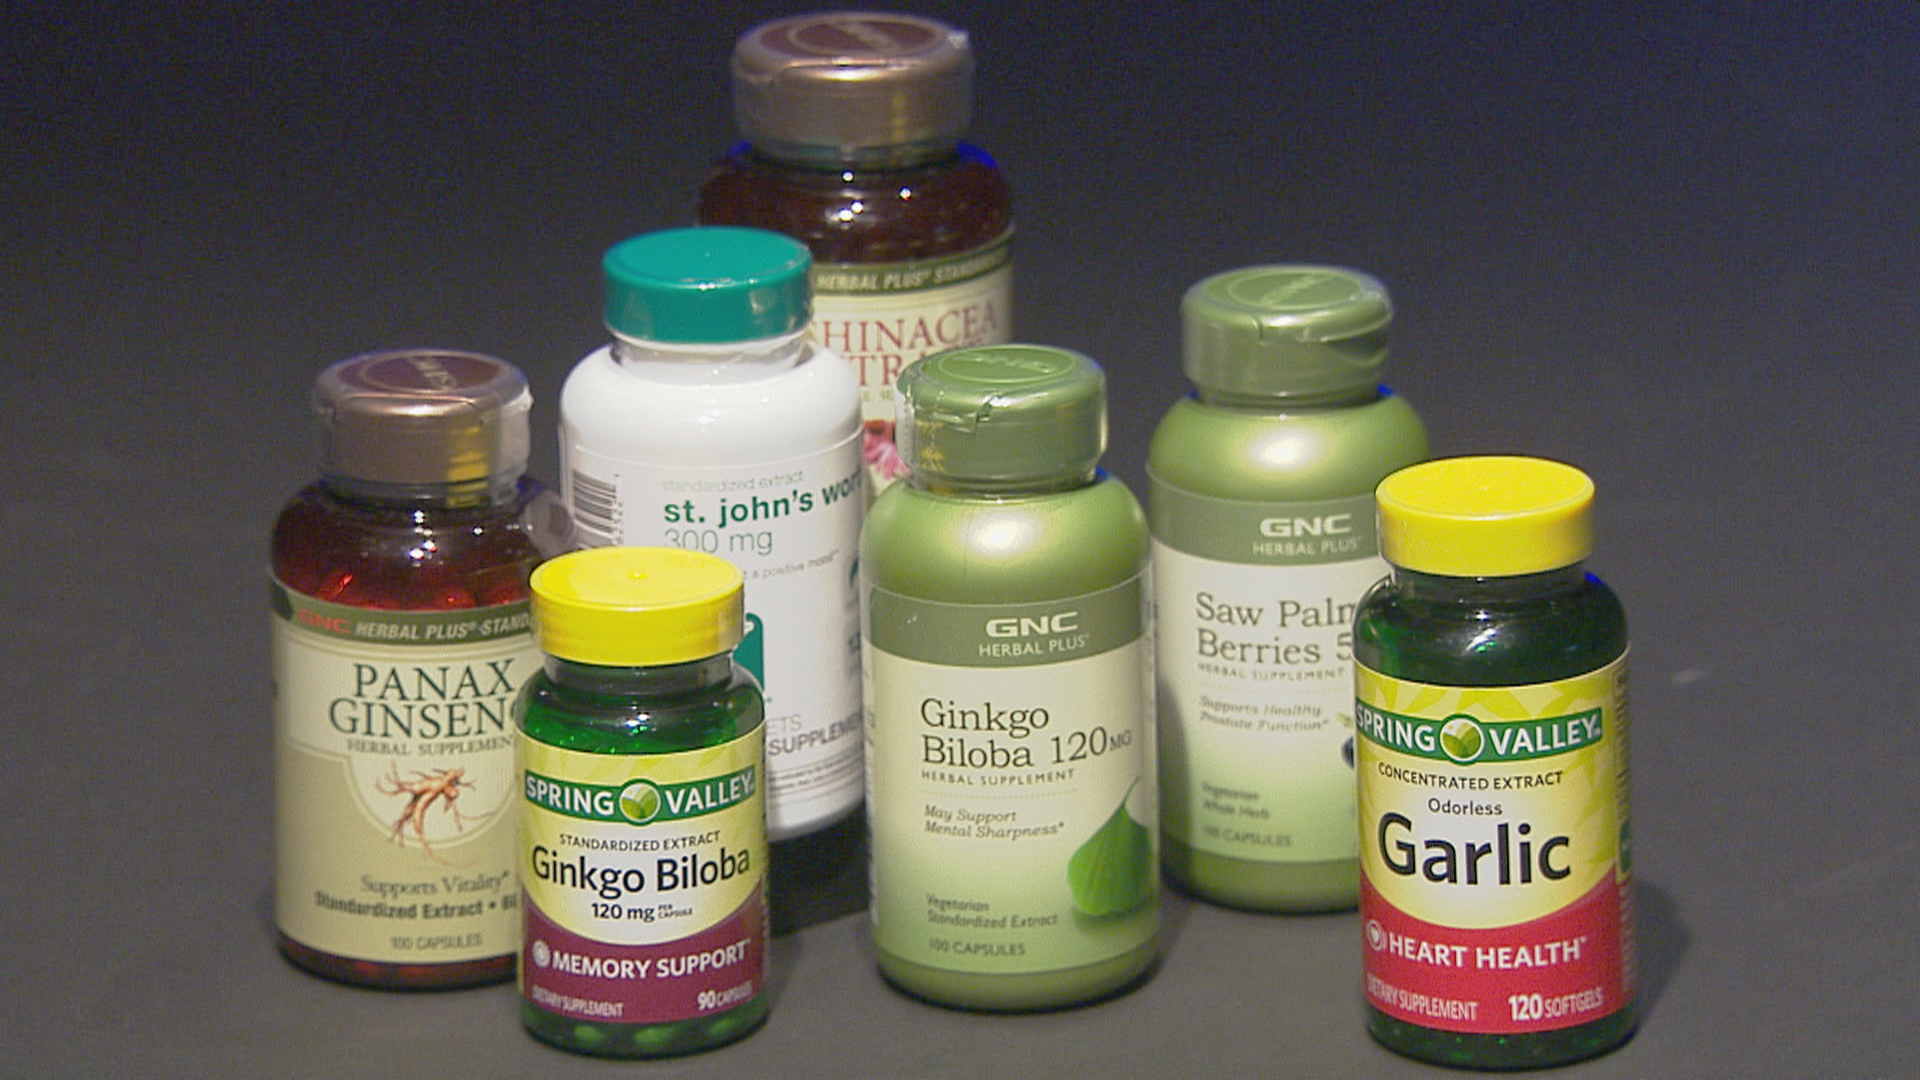 week 7 dietary supplements report Liver injury caused by herbals, dietary supplements rises in study population date: september 4, 2014 source: wiley summary: liver injury caused by herbals and dietary supplements increased from 7% to 20% in a us study group over.